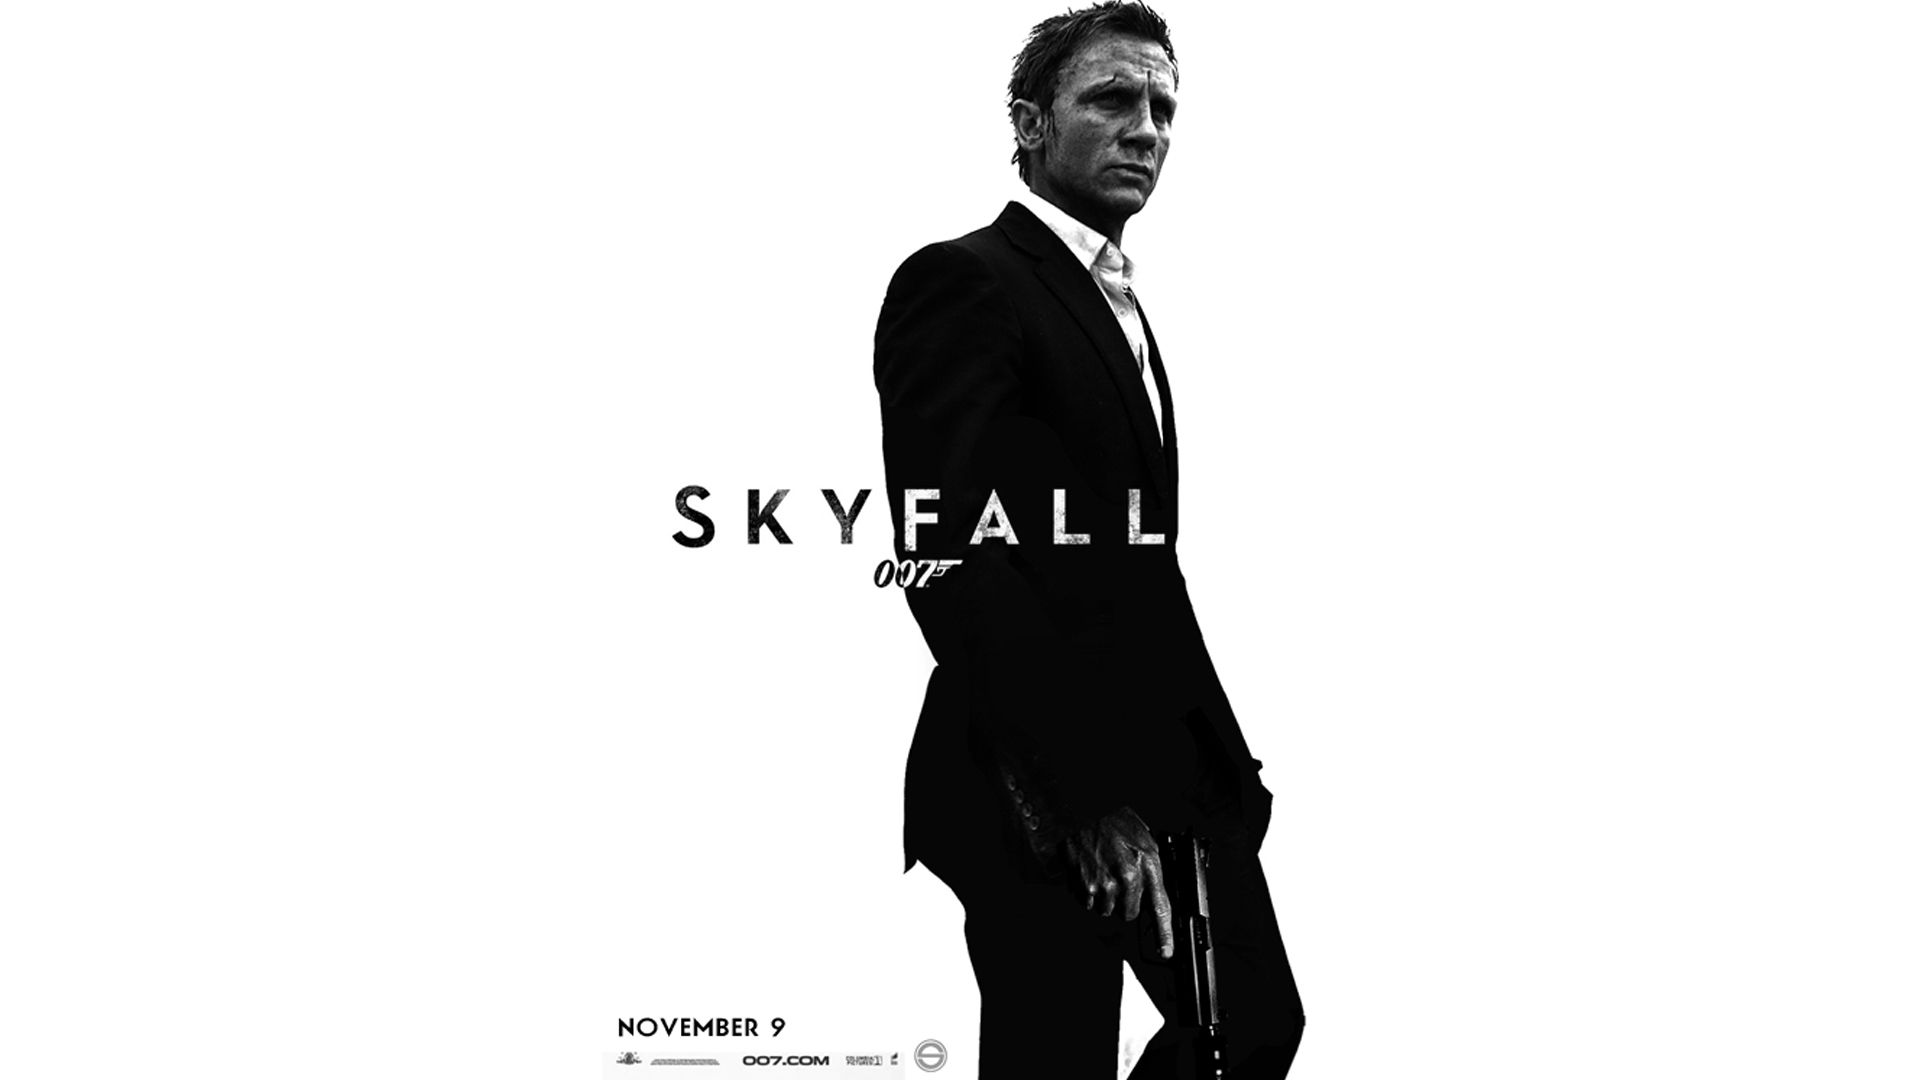 Skyfall-James-Bond-wallpaper-daniel-craig-32623669-1920-1080.jpg